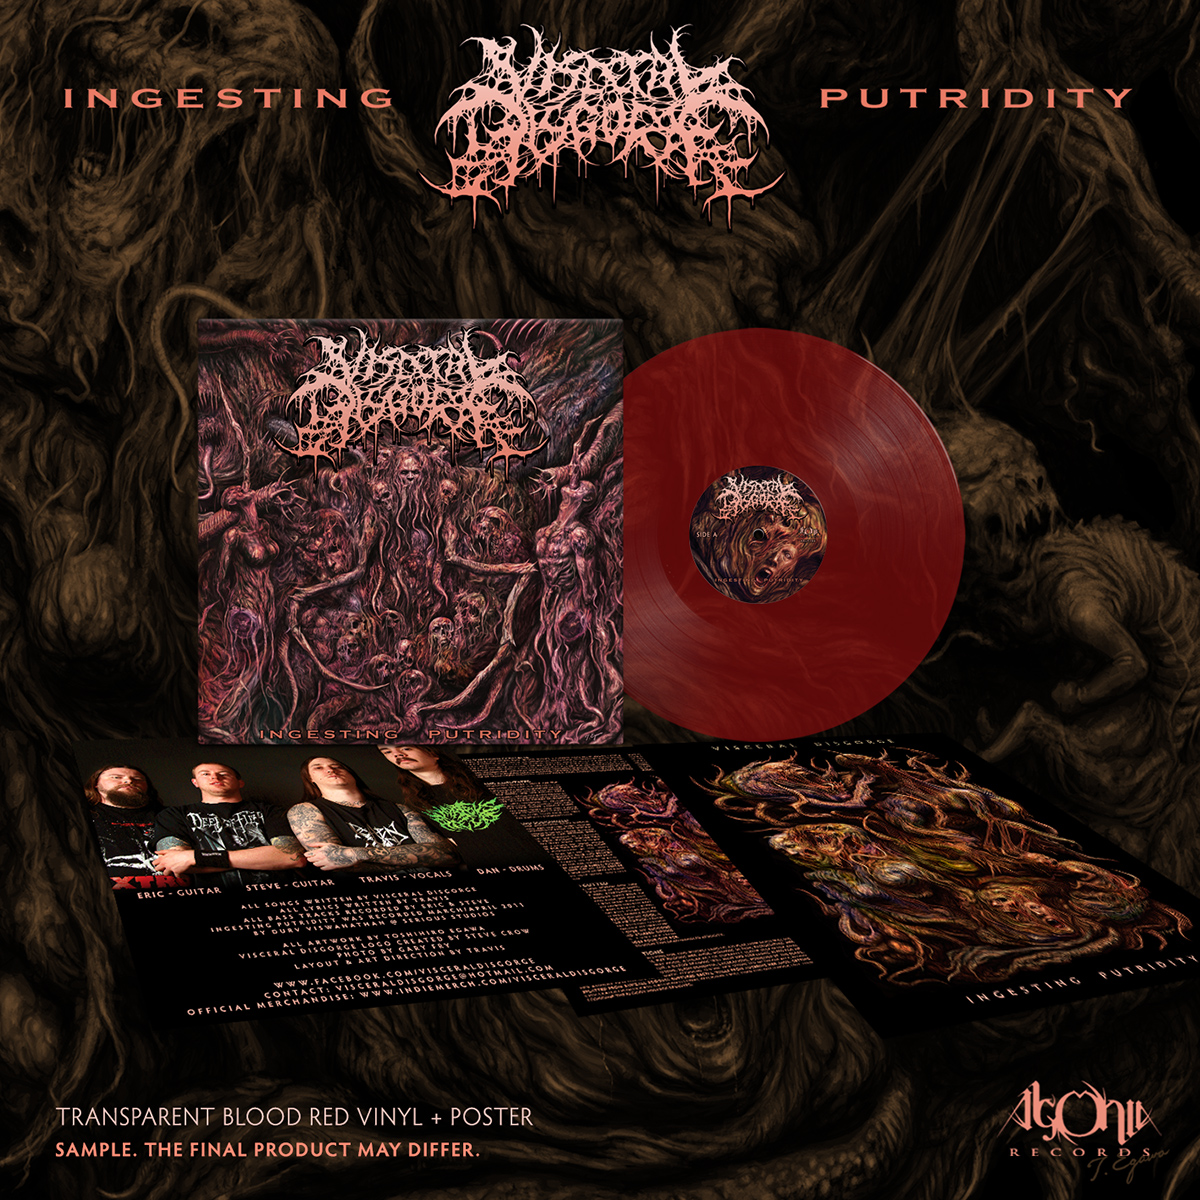 Visceral Disgorge - Ingesting Putridity (Red Vinyl) - only 172 worldwide!